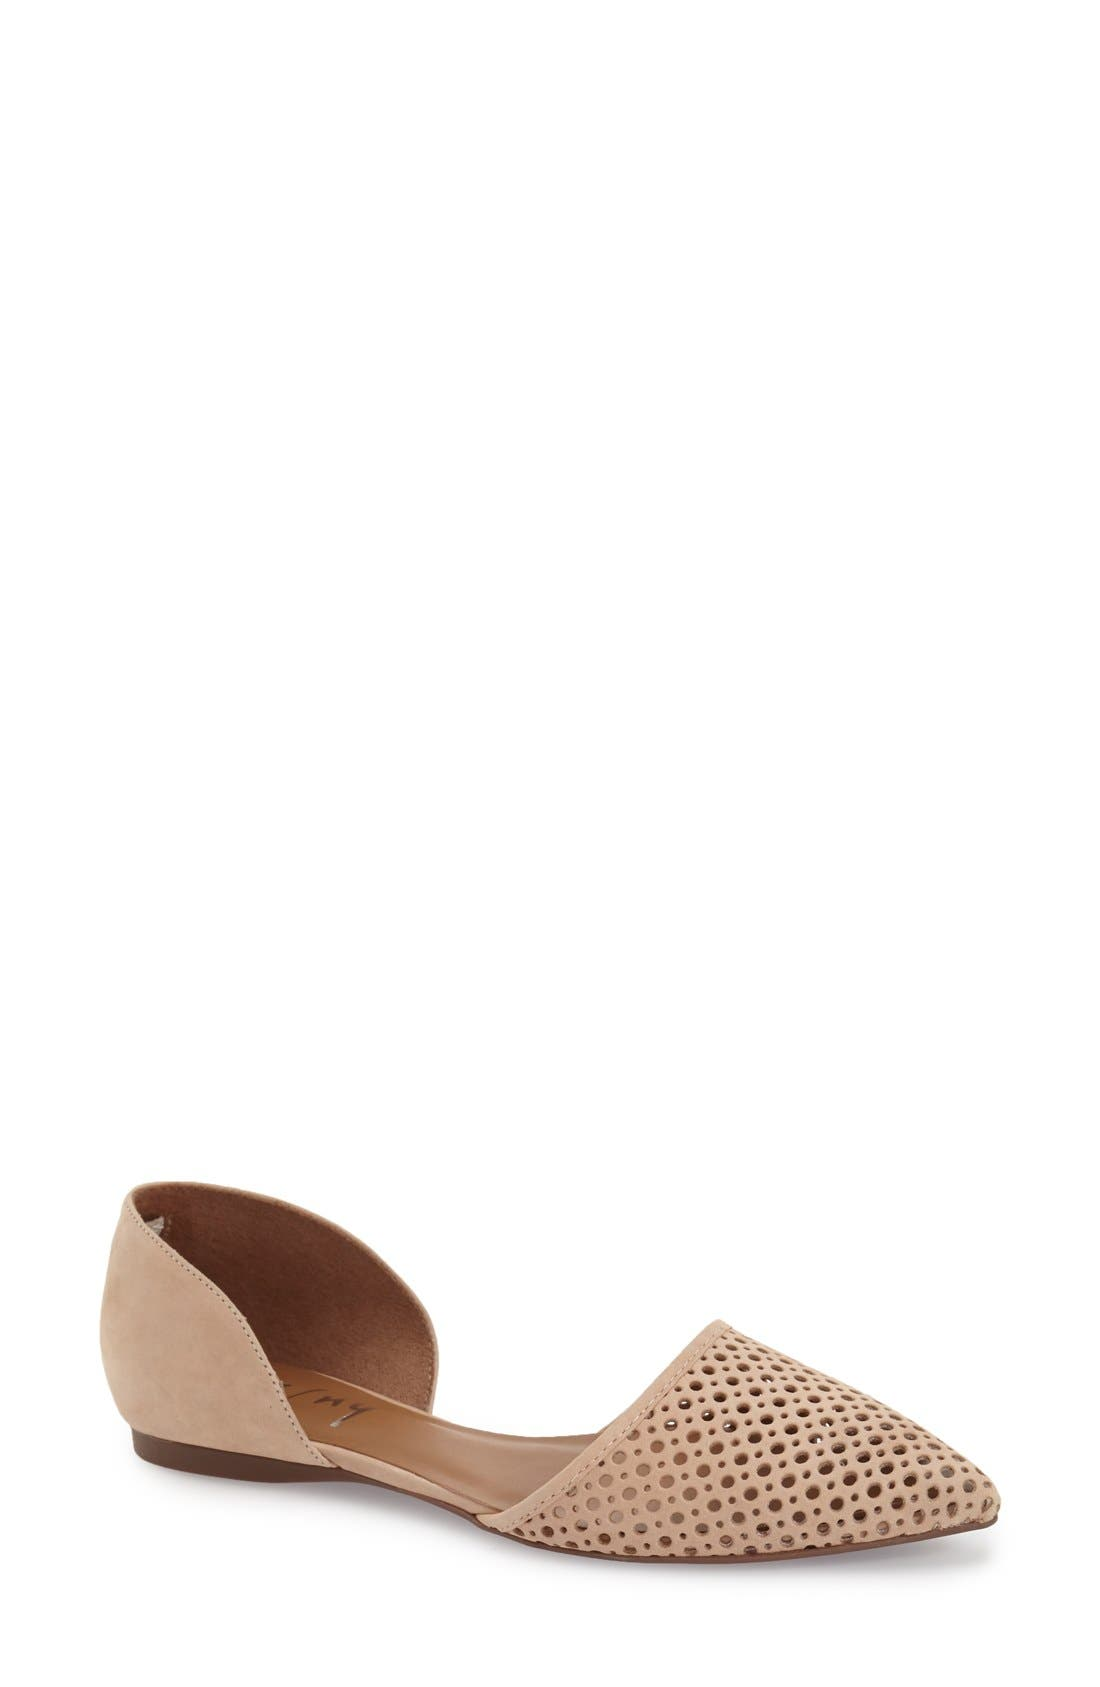 Alternate Image 1 Selected - French Sole 'Quotient' d'Orsay Flat (Women)